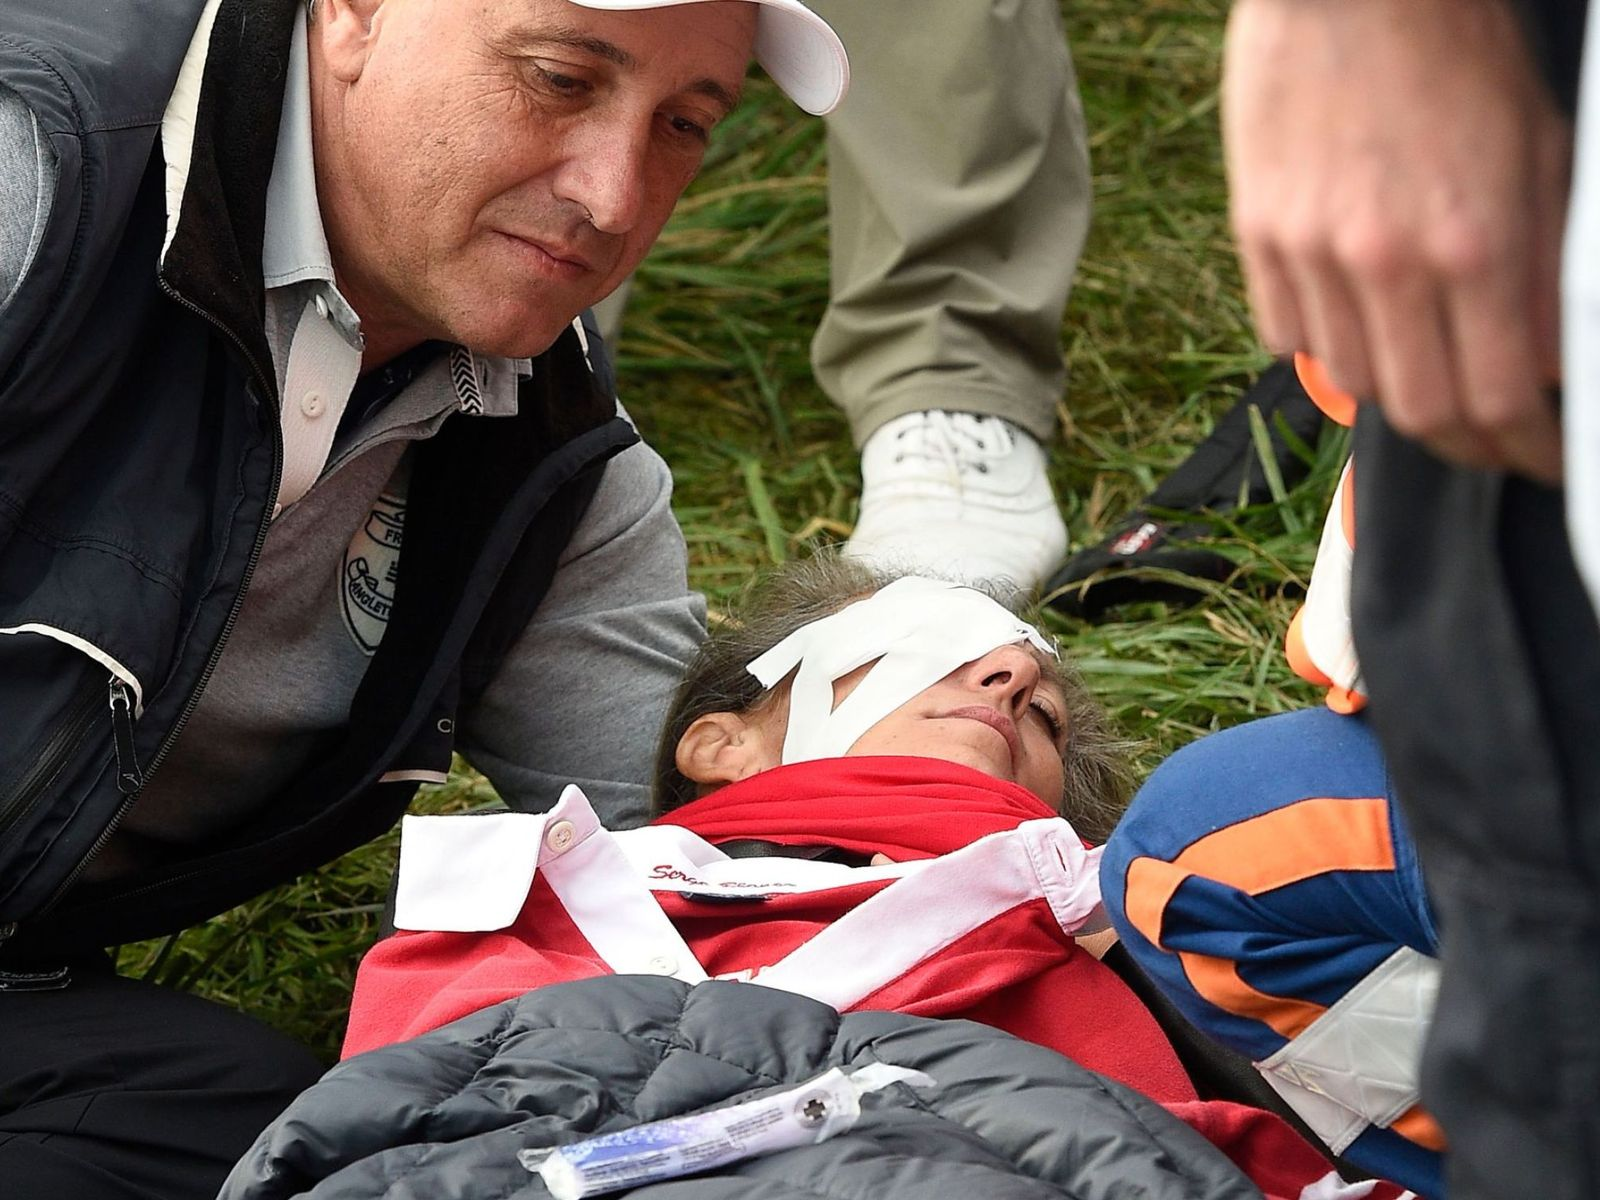 Spectator loses vision at Ryder Cup after being hit by golf ball